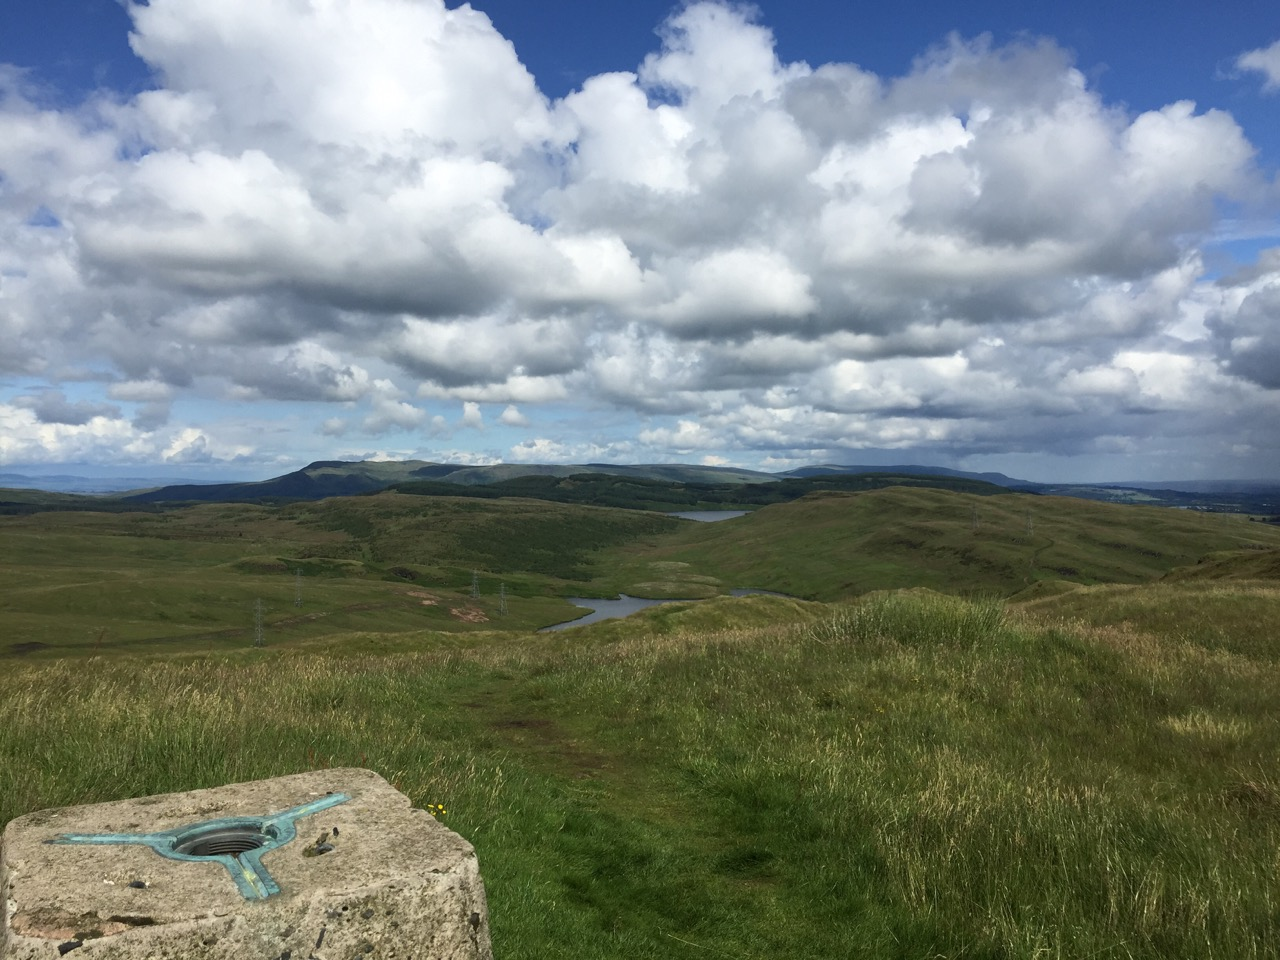 FRom Slacks Trig Point